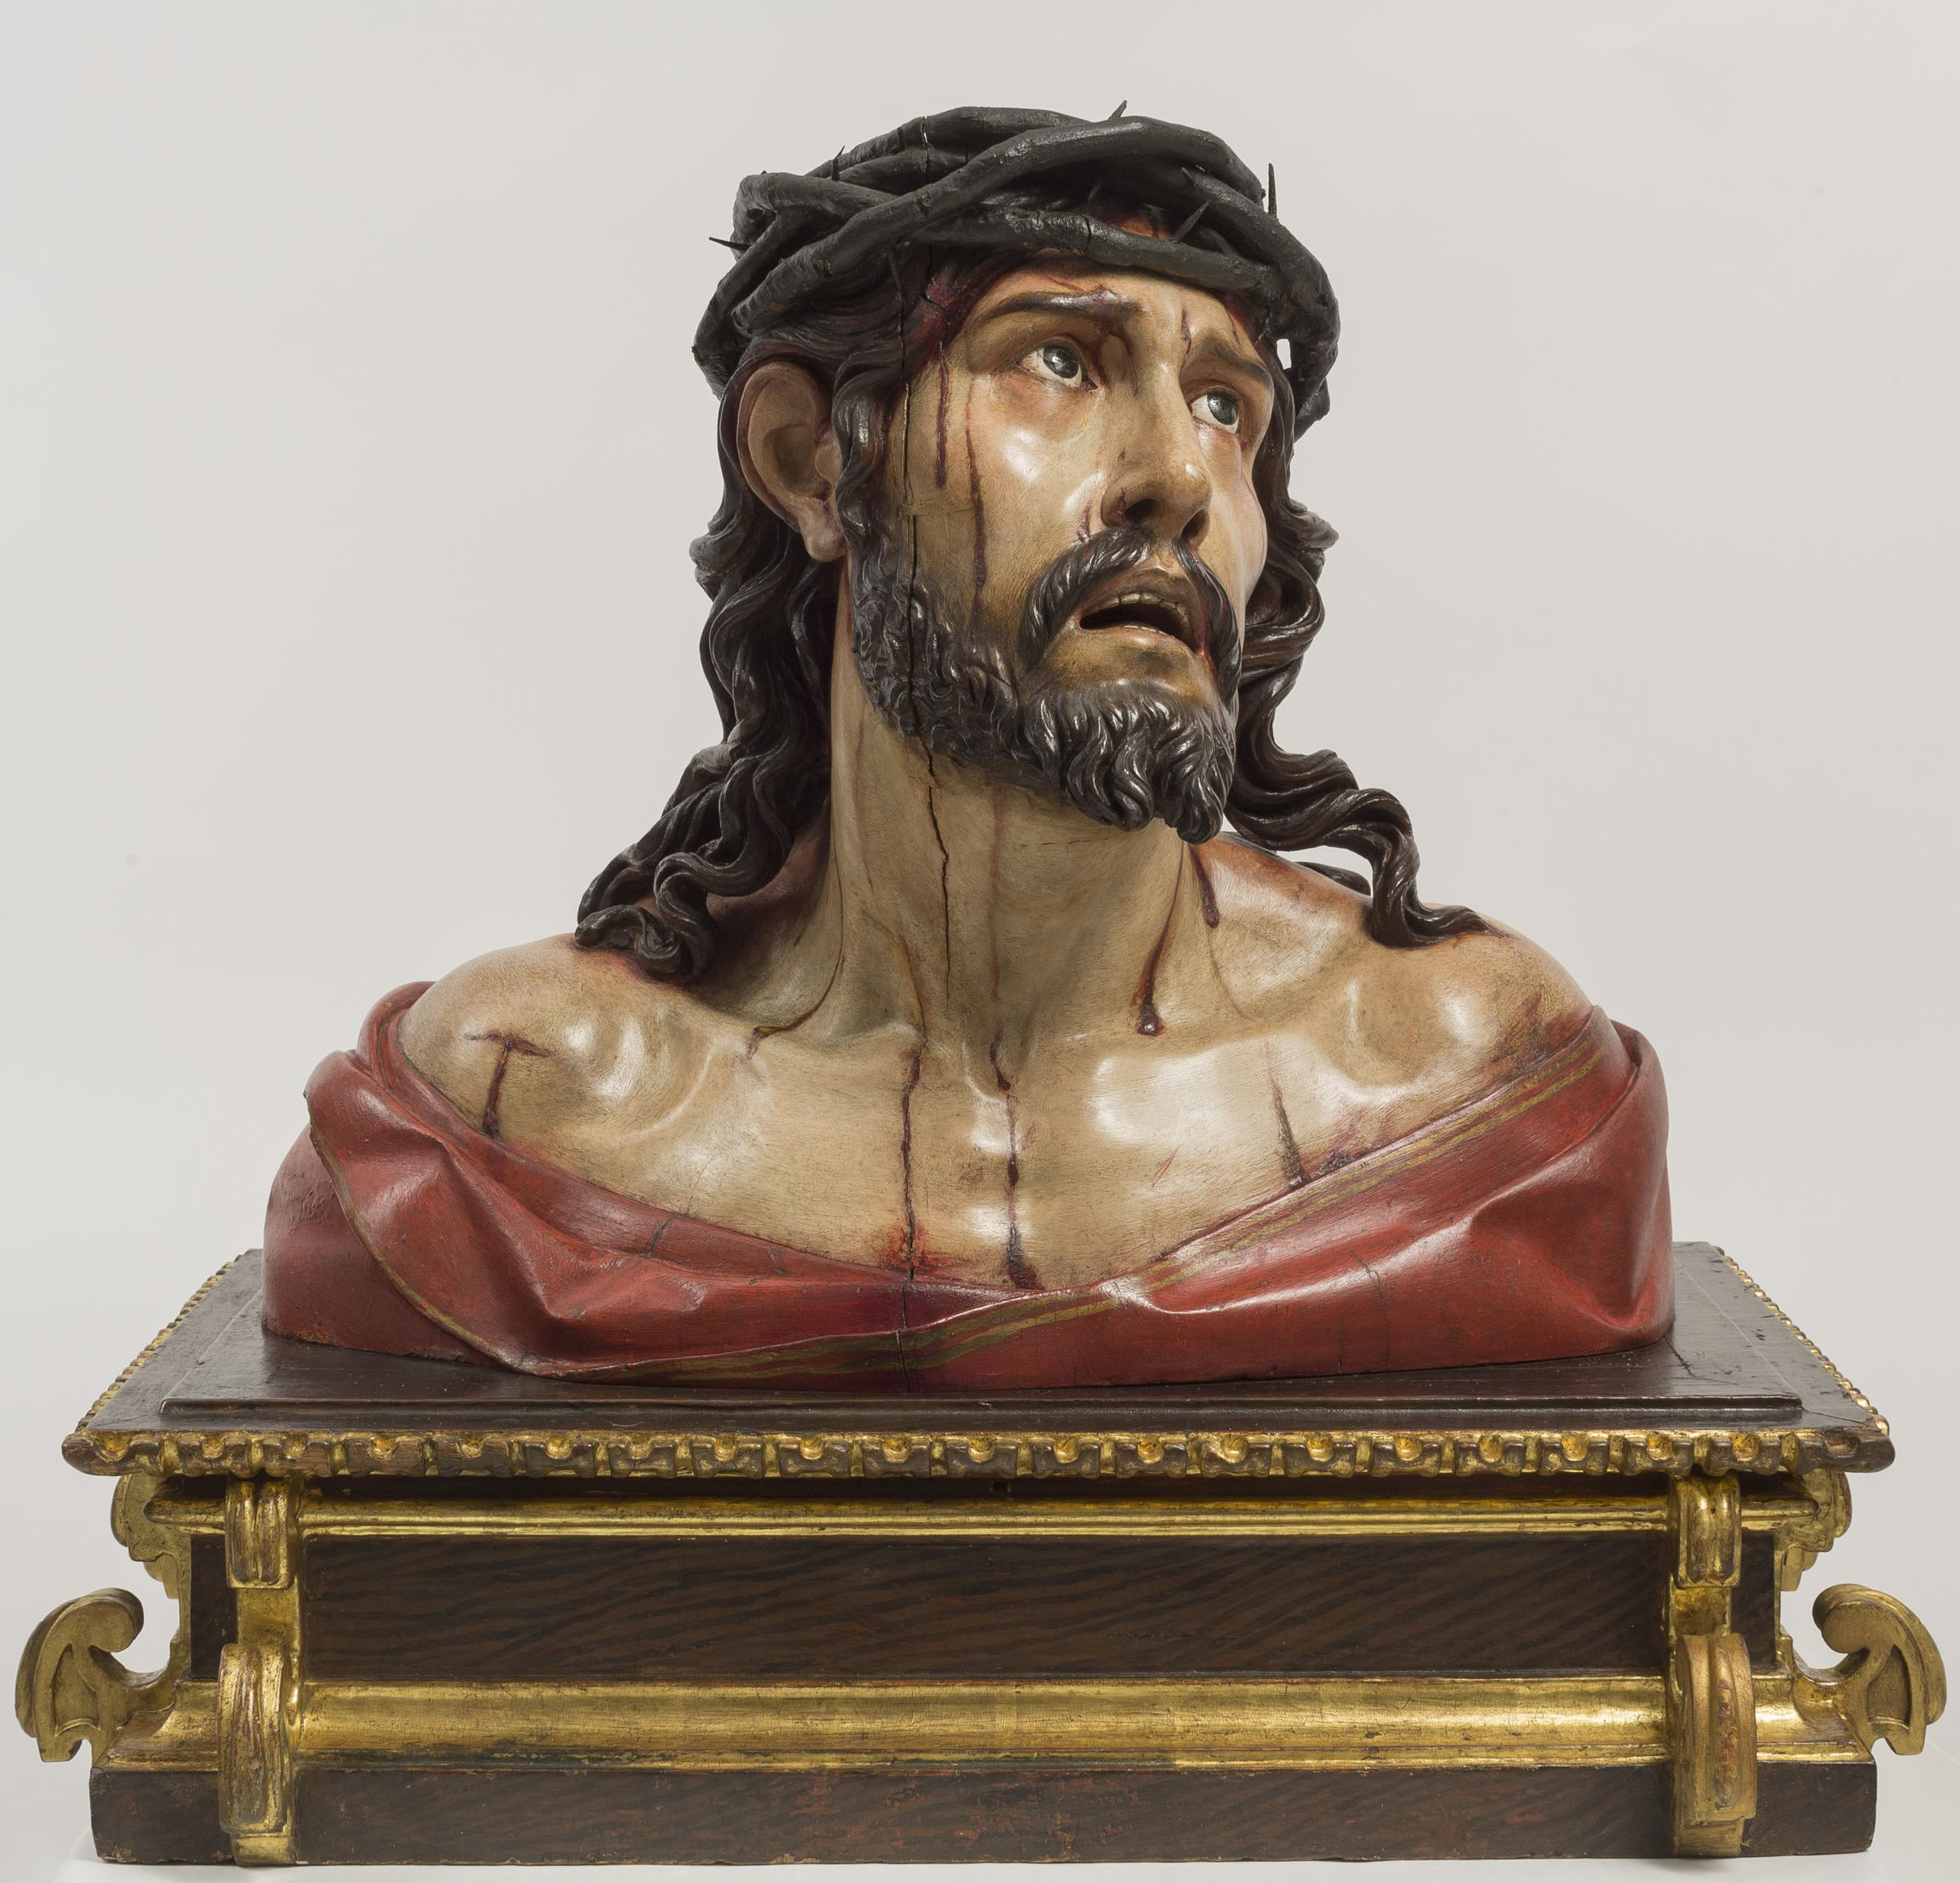 Manuel Pereira, Ecce Homo, between 1635-1650